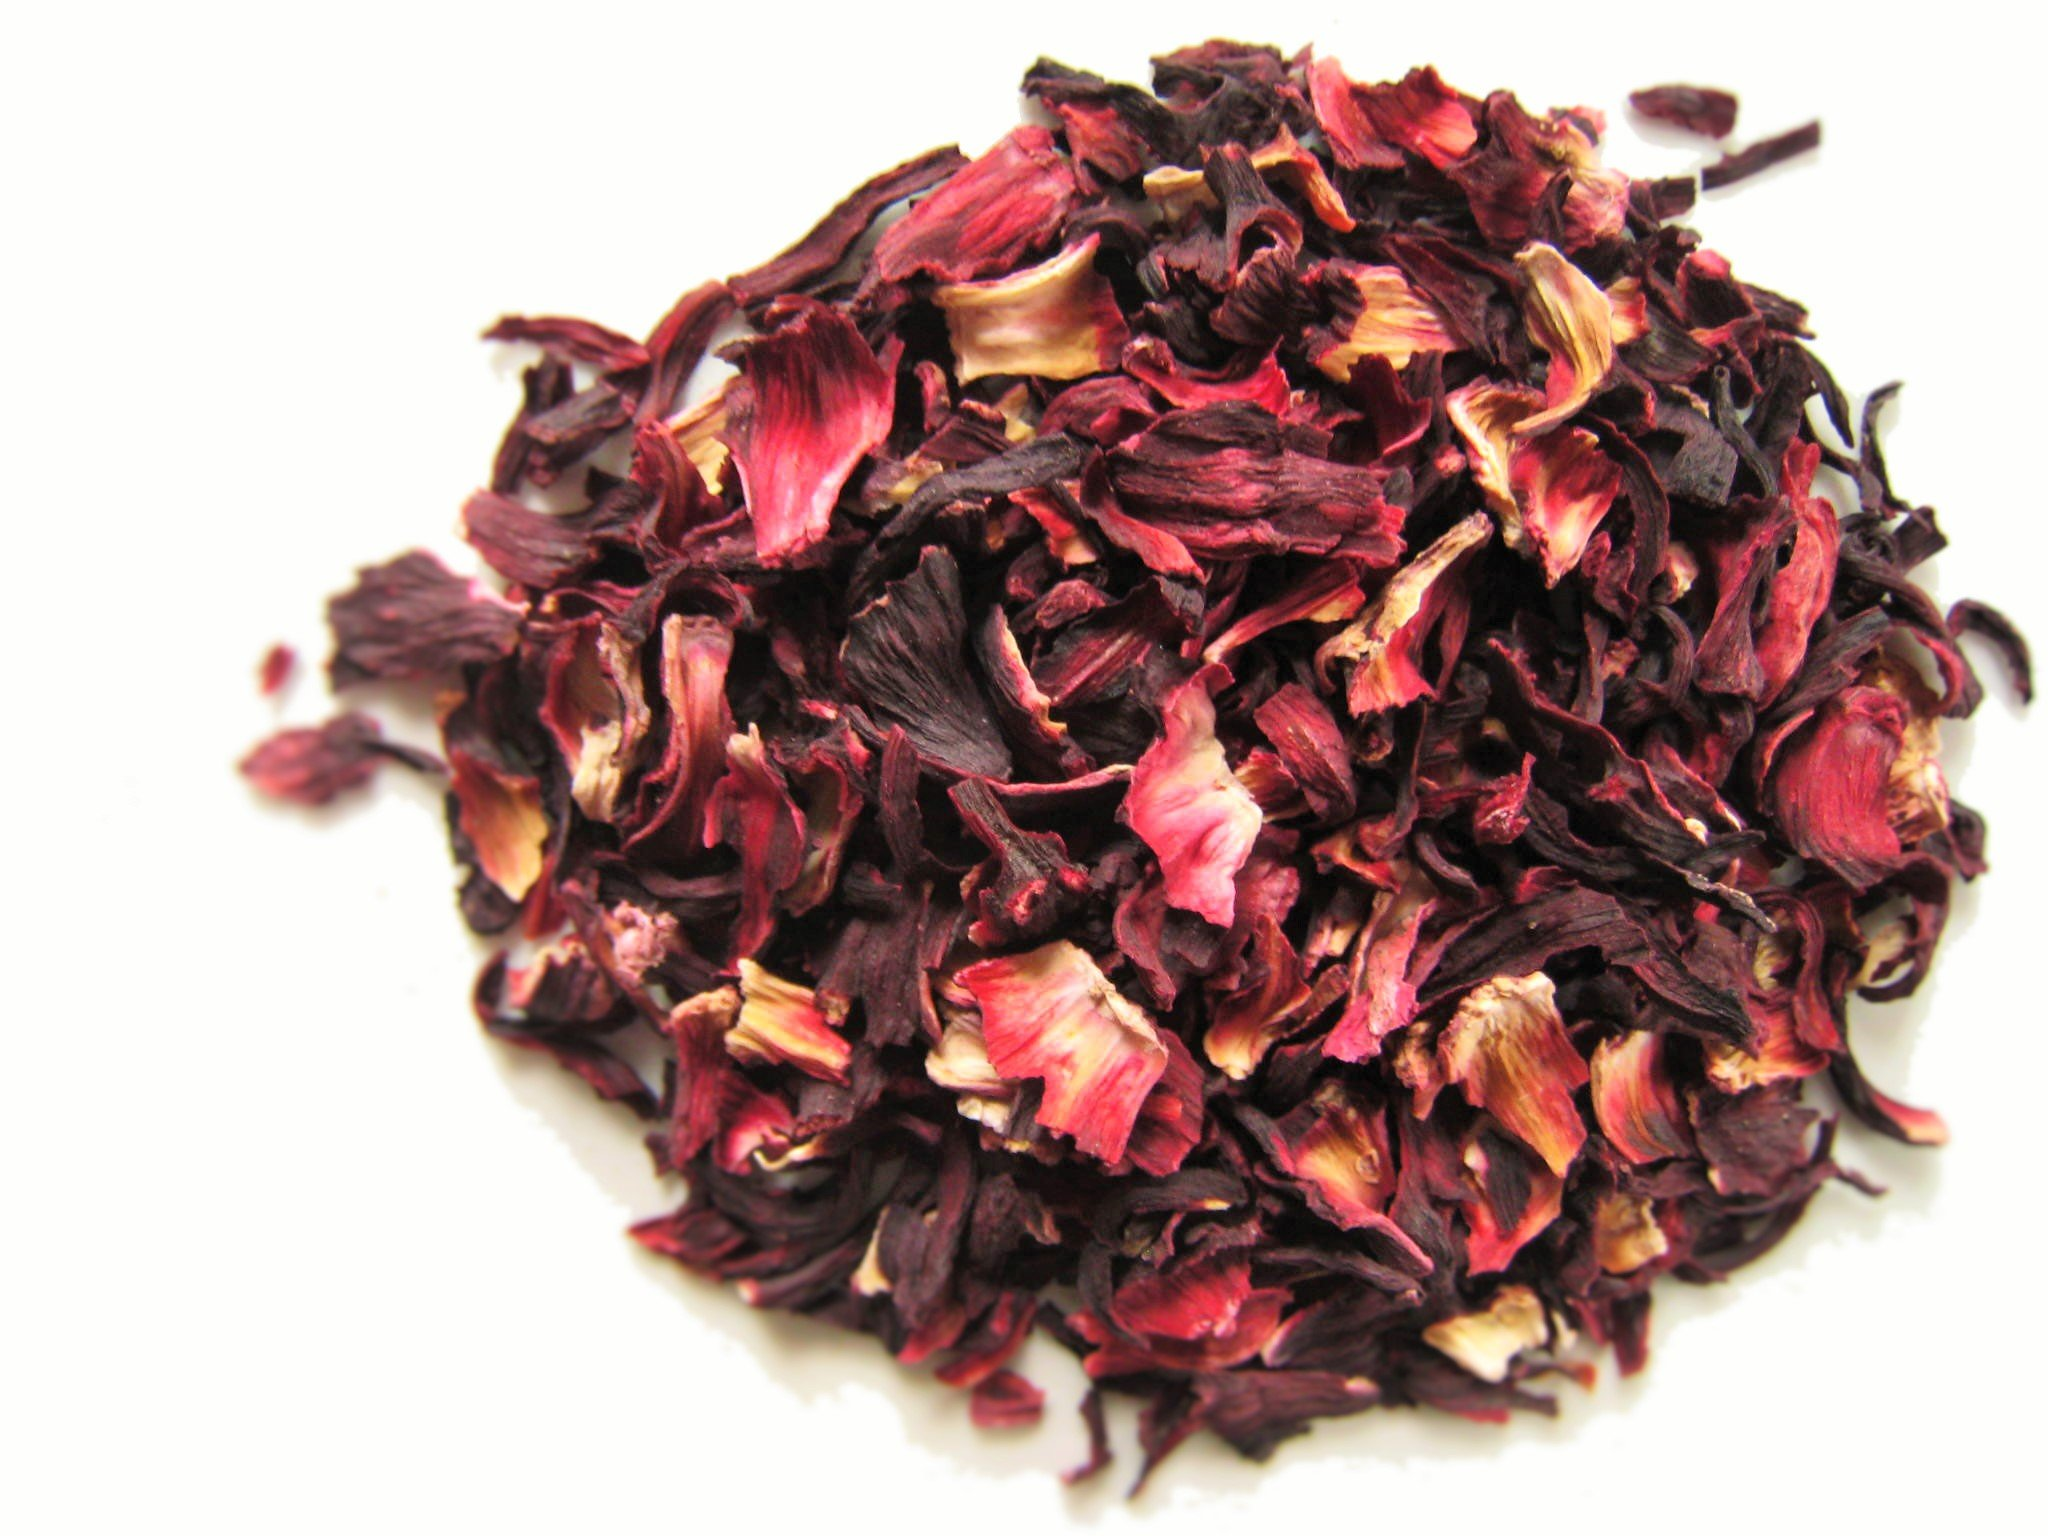 Amazon hibiscus flower dried flor de jamaica grocery mexican hibiscus flower 100 natural premium quality triple cleaned 32 2 lb izmirmasajfo